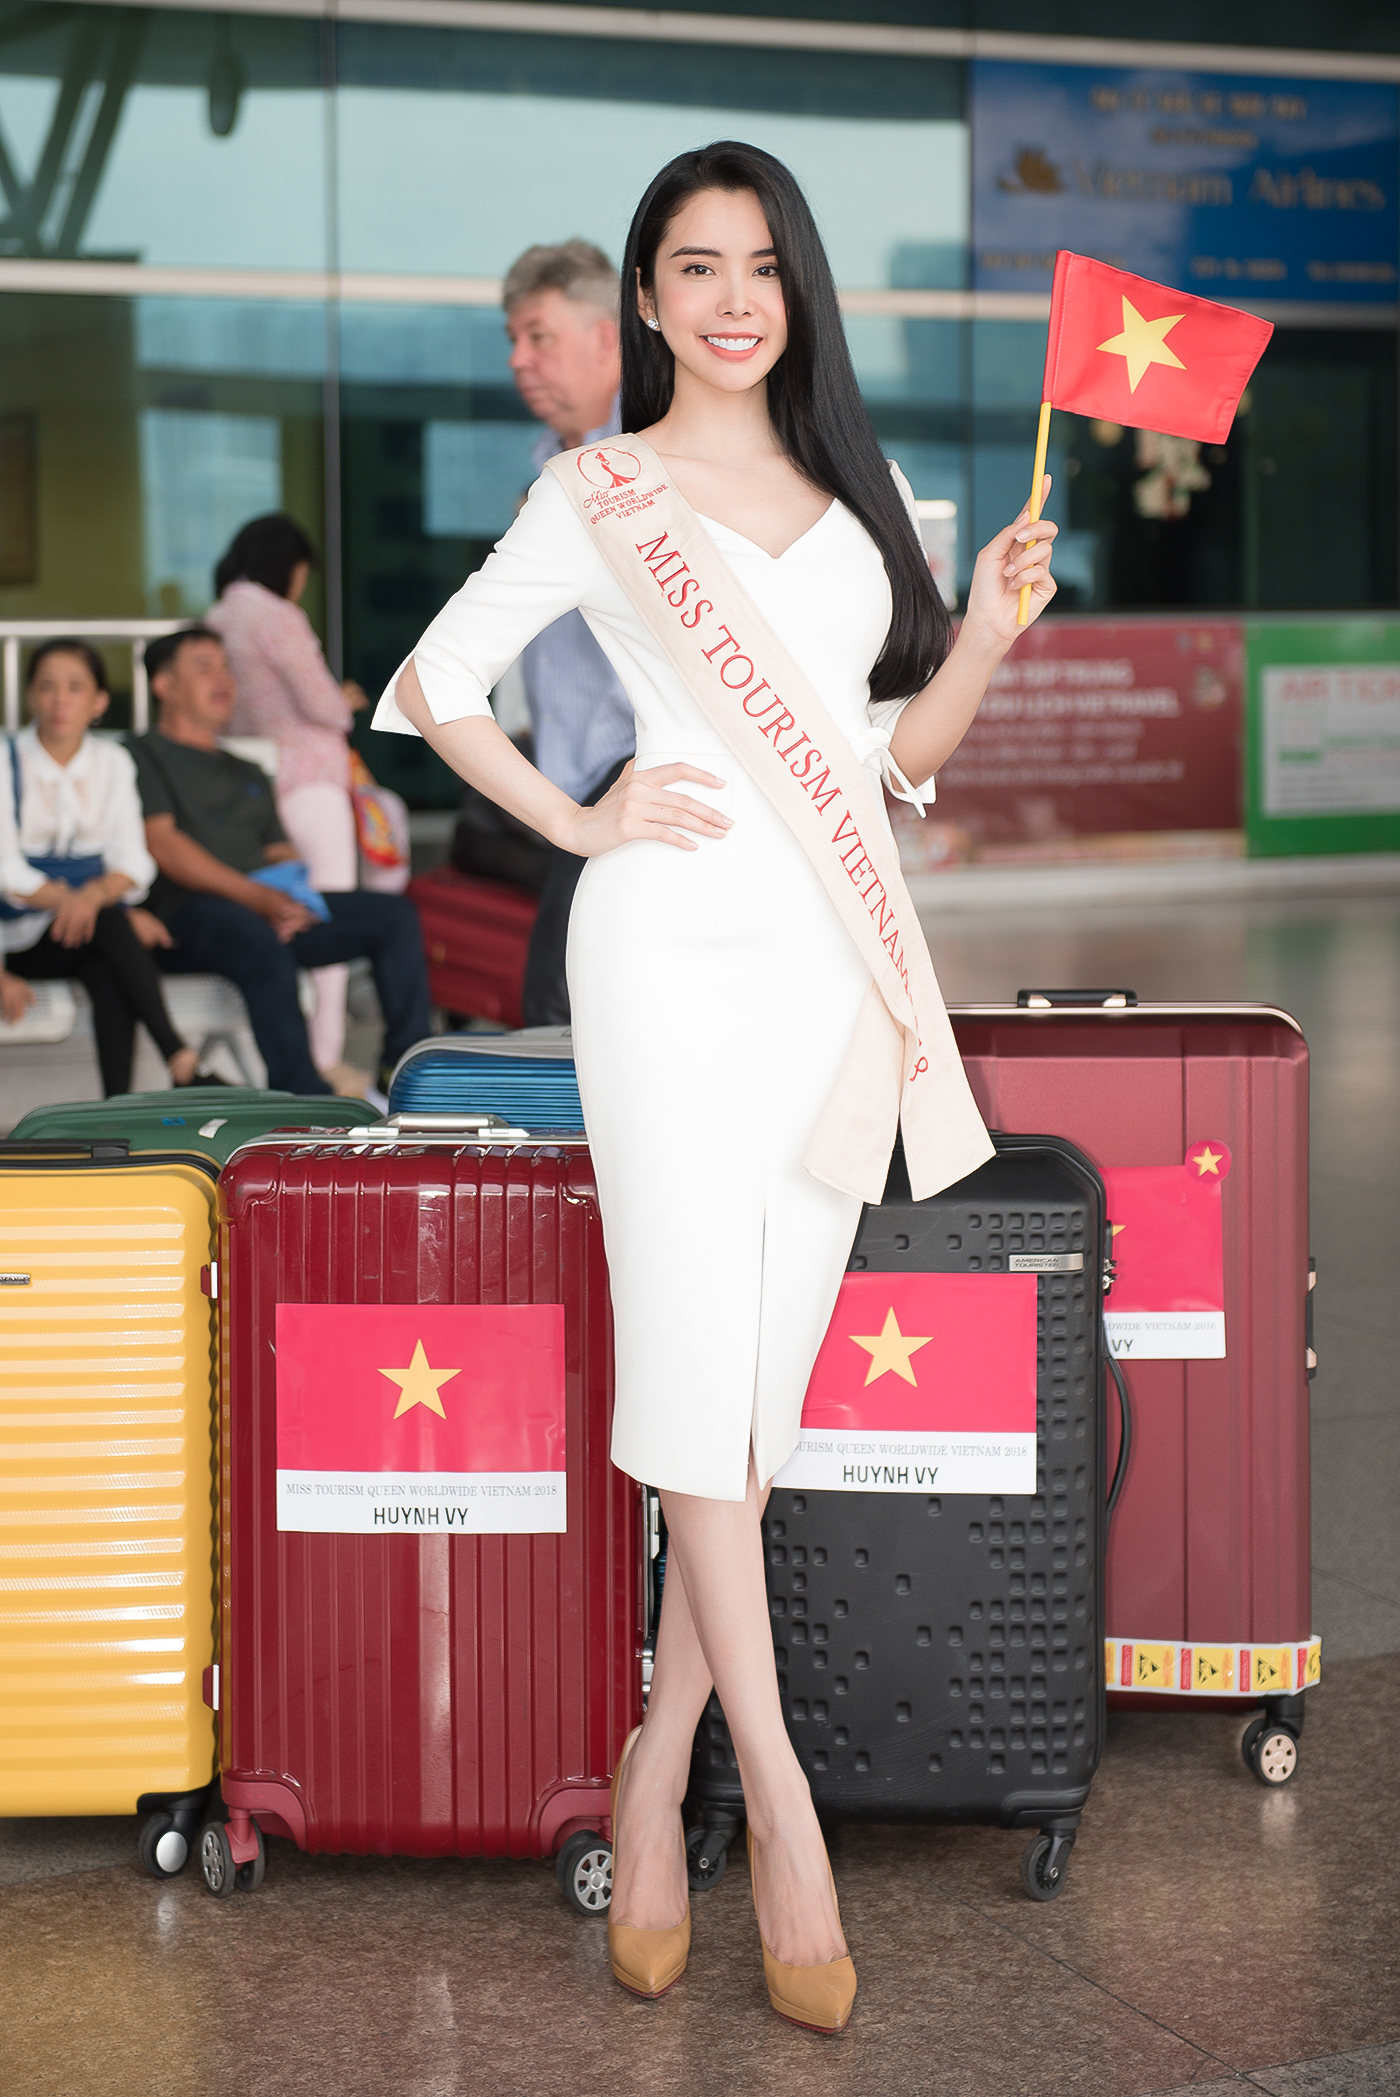 Lien Binh Phat tien Huynh Vy di thi Miss Tourism Queen Worldwide